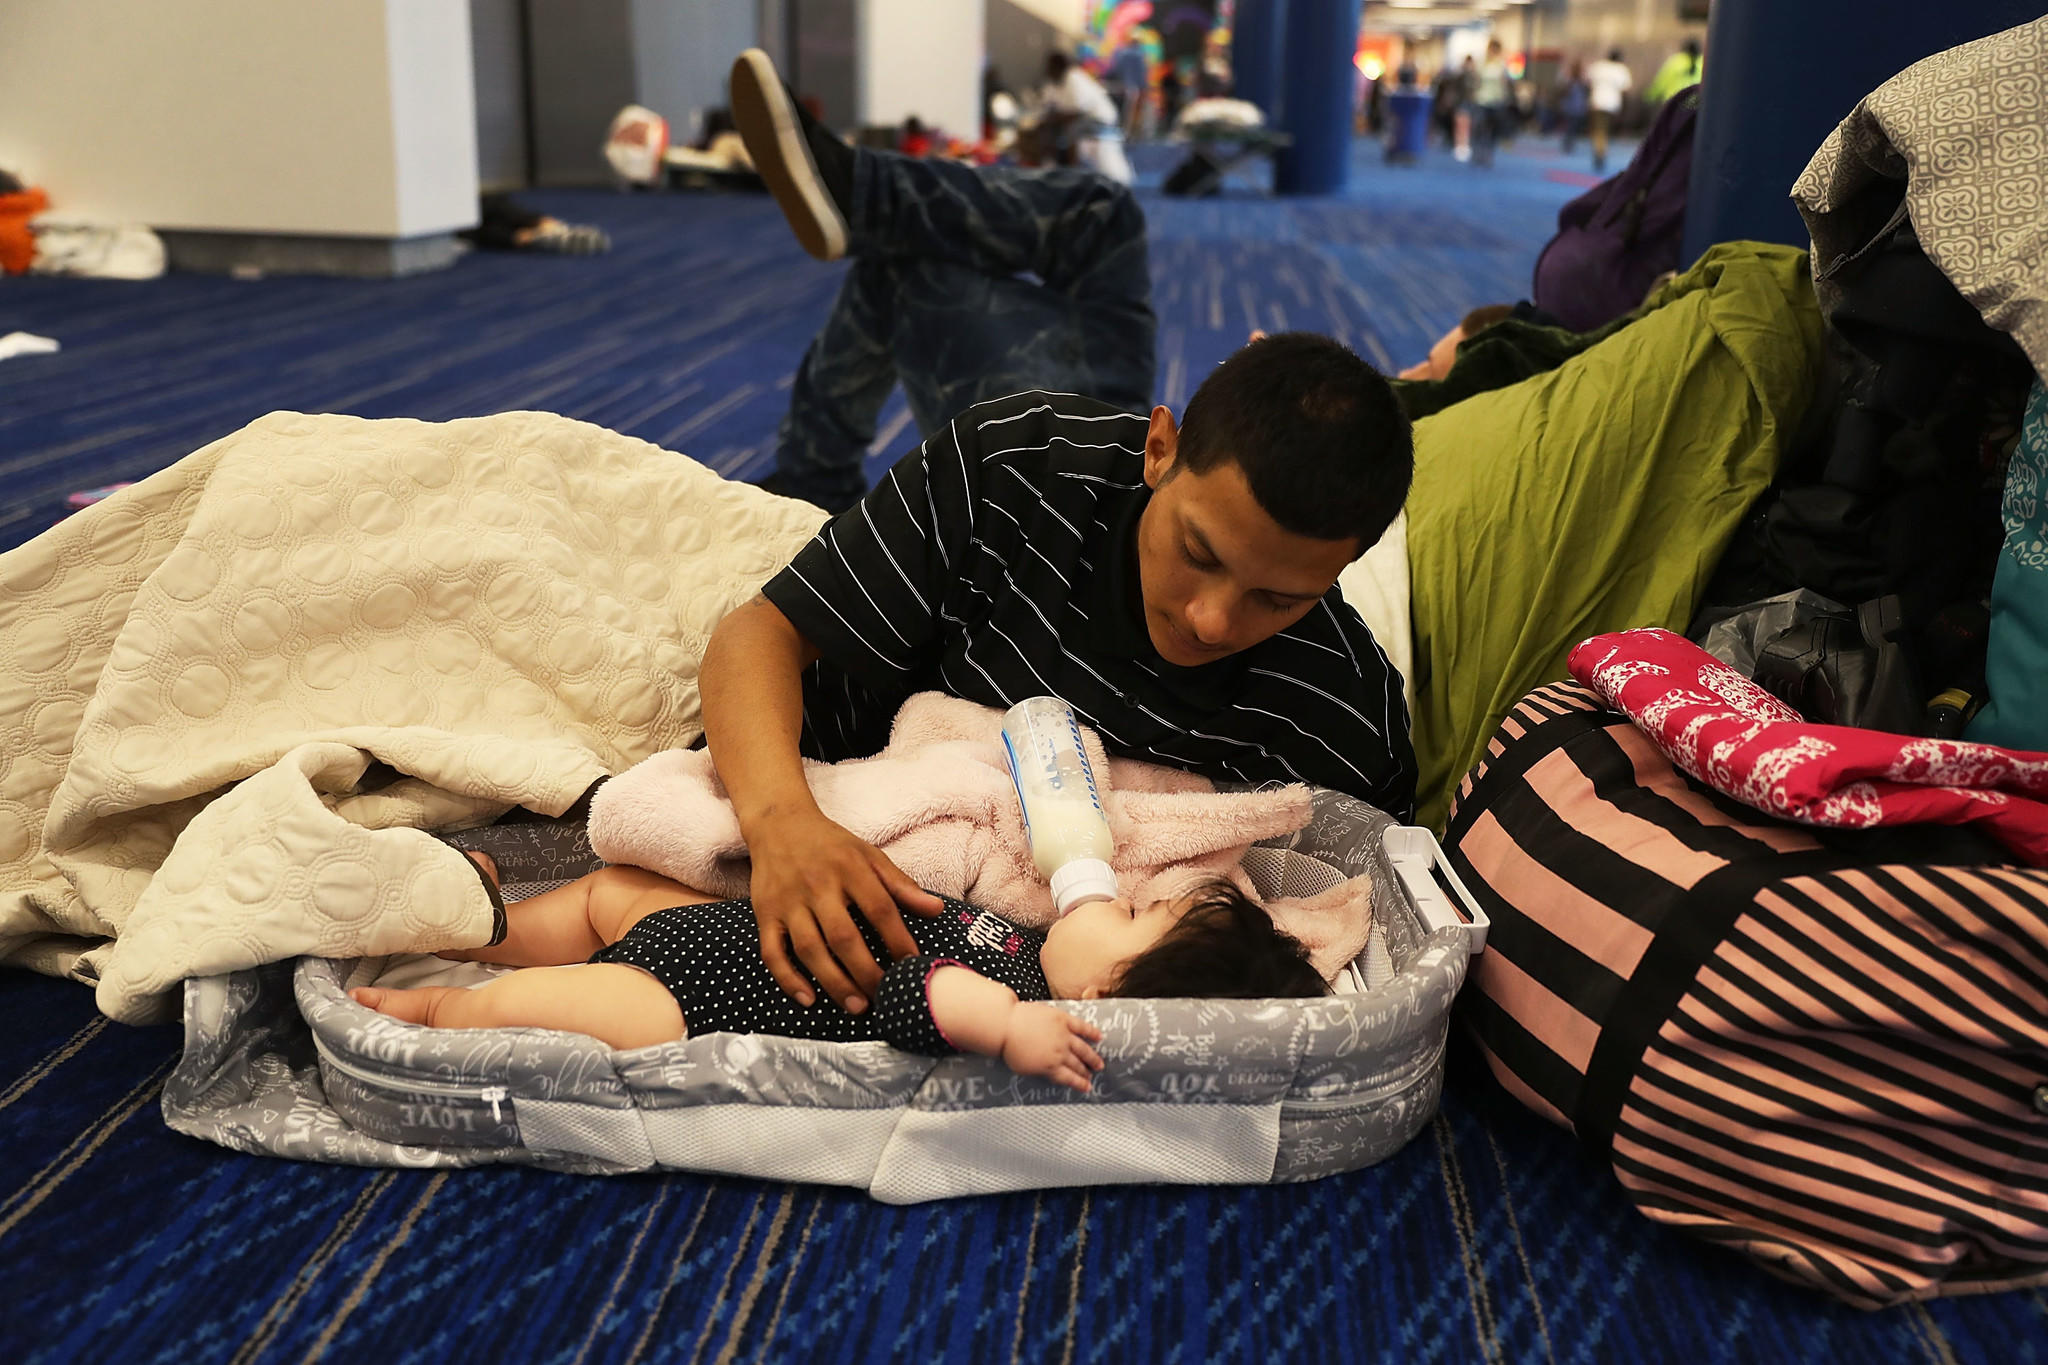 ... Mark Ocosta and his baby, Aubrey, take shelter at the George R. Brown Convention Center. (Joe Raedle / Getty Images)